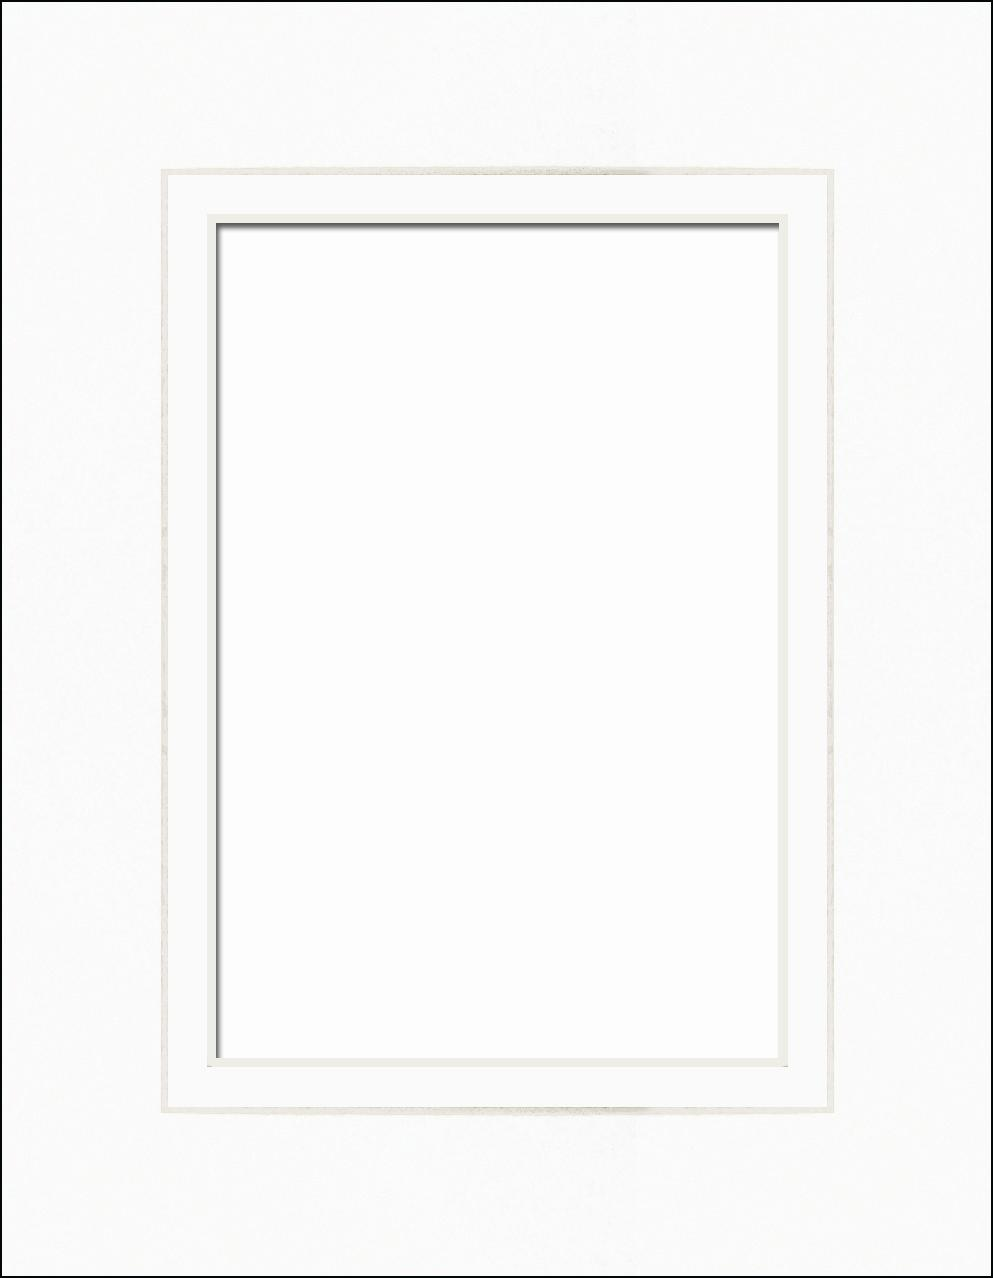 PA Framing Pre-cut Double Photo Mat Board 8 x 10 in. -- CreateForLess